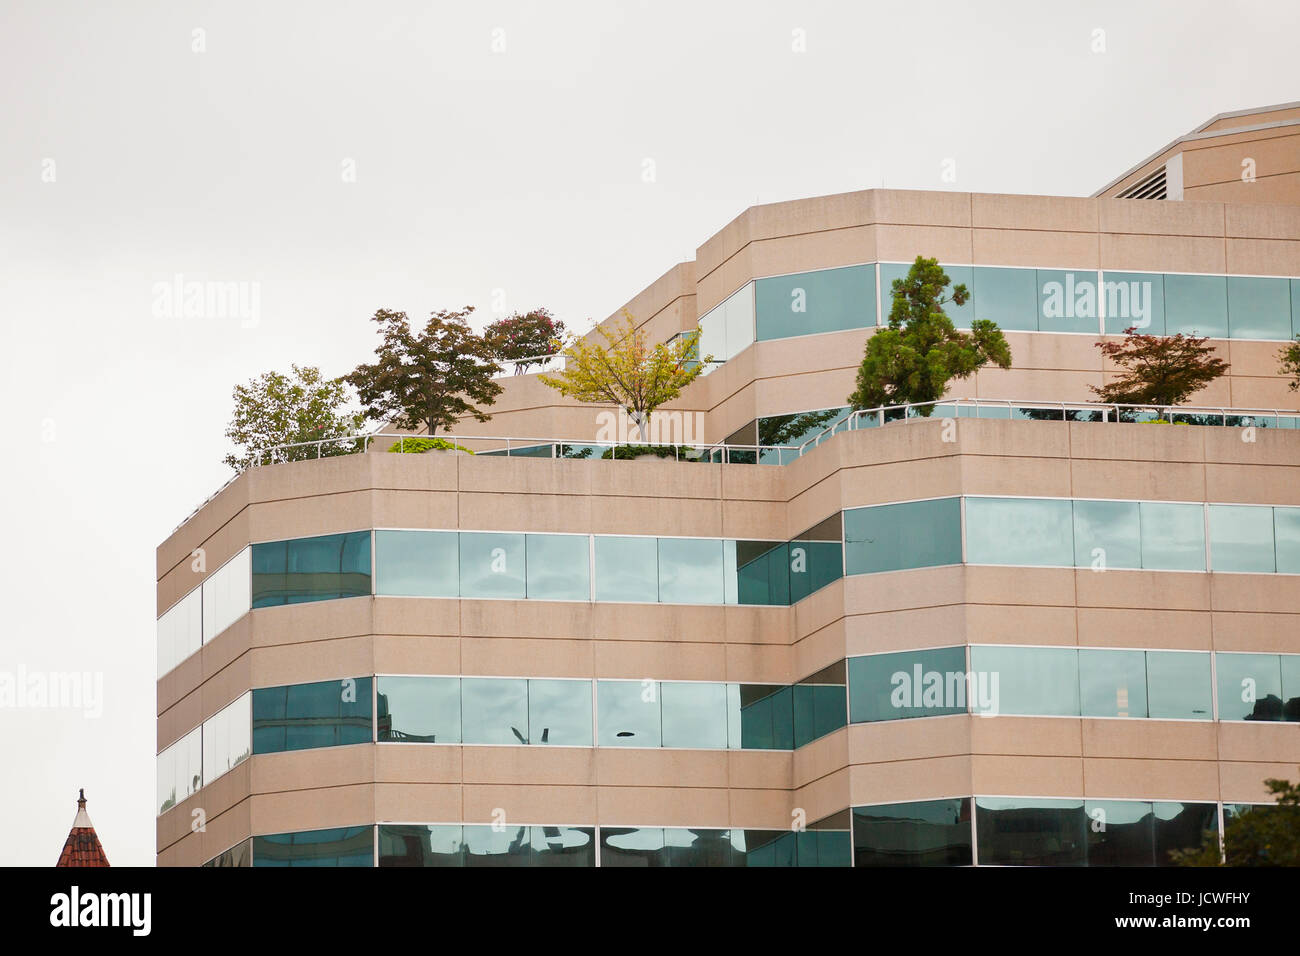 Trees growing on rooftop of office building - Washington, DC USA Stock Photo